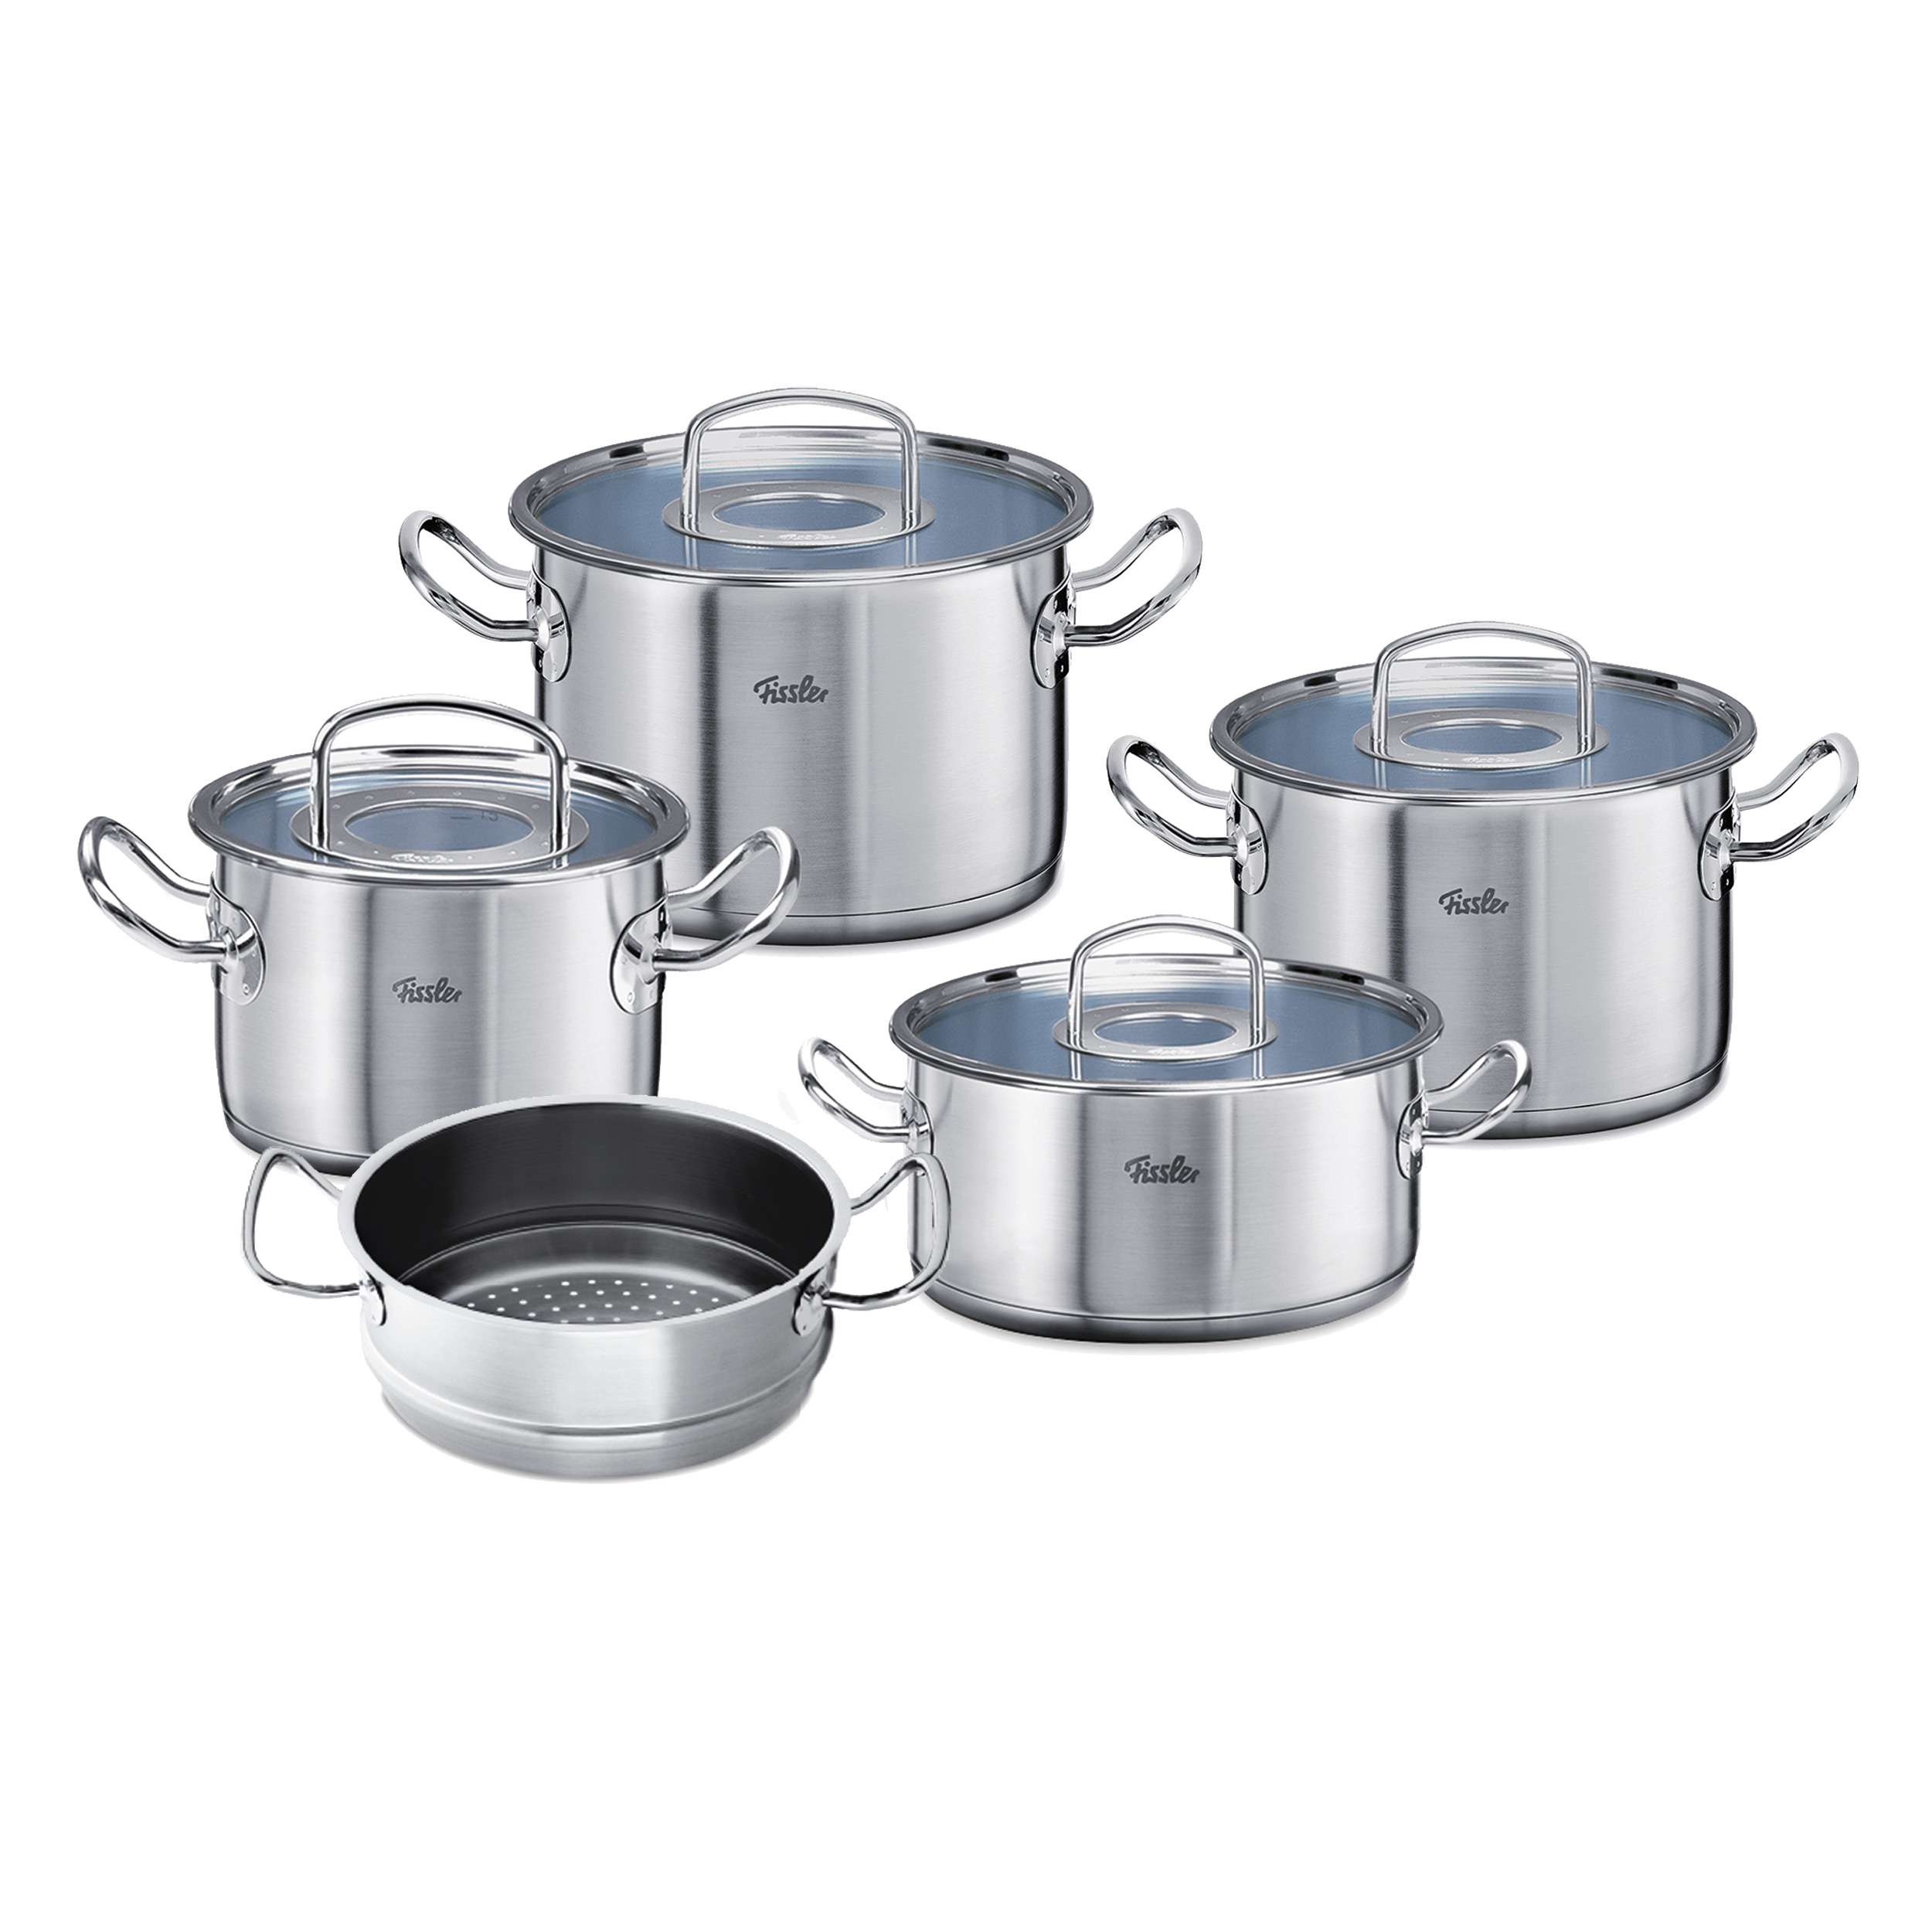 Fissler Original Profi Collection Pot Set With Glass Lid Stewing Pan Cooking Pot Steamer Insert Stainless Steel 5 Part At About Tea De Shop